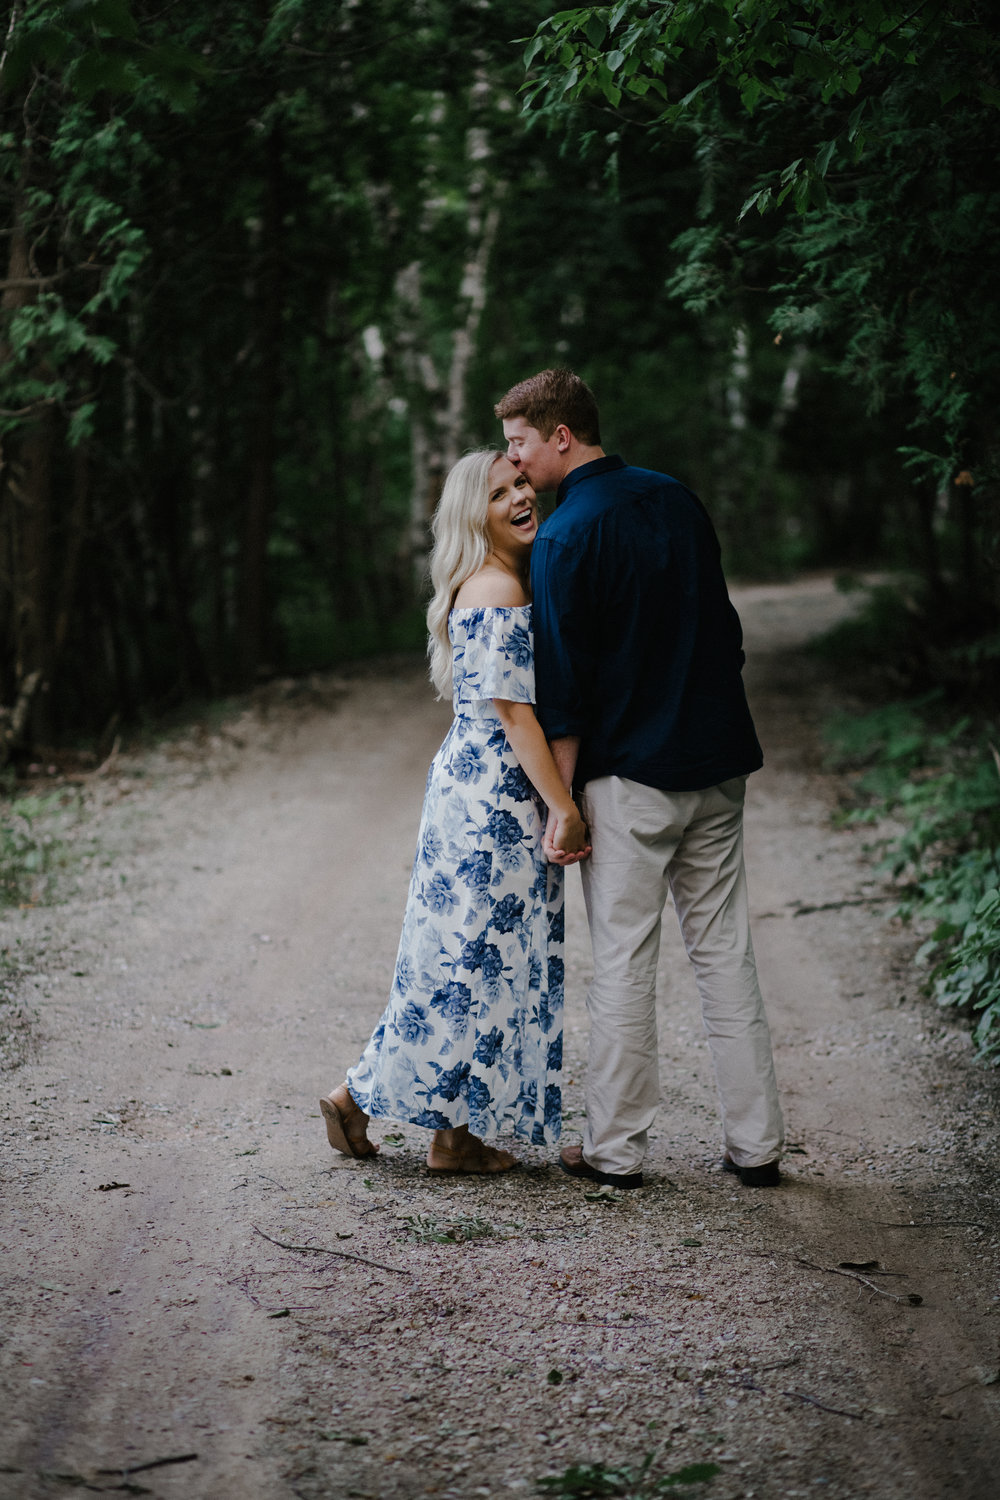 COURTNEY-CHRIS-FRANKFORT-ENGAGEMENT-PHOTOGRAPHY_0496.jpg